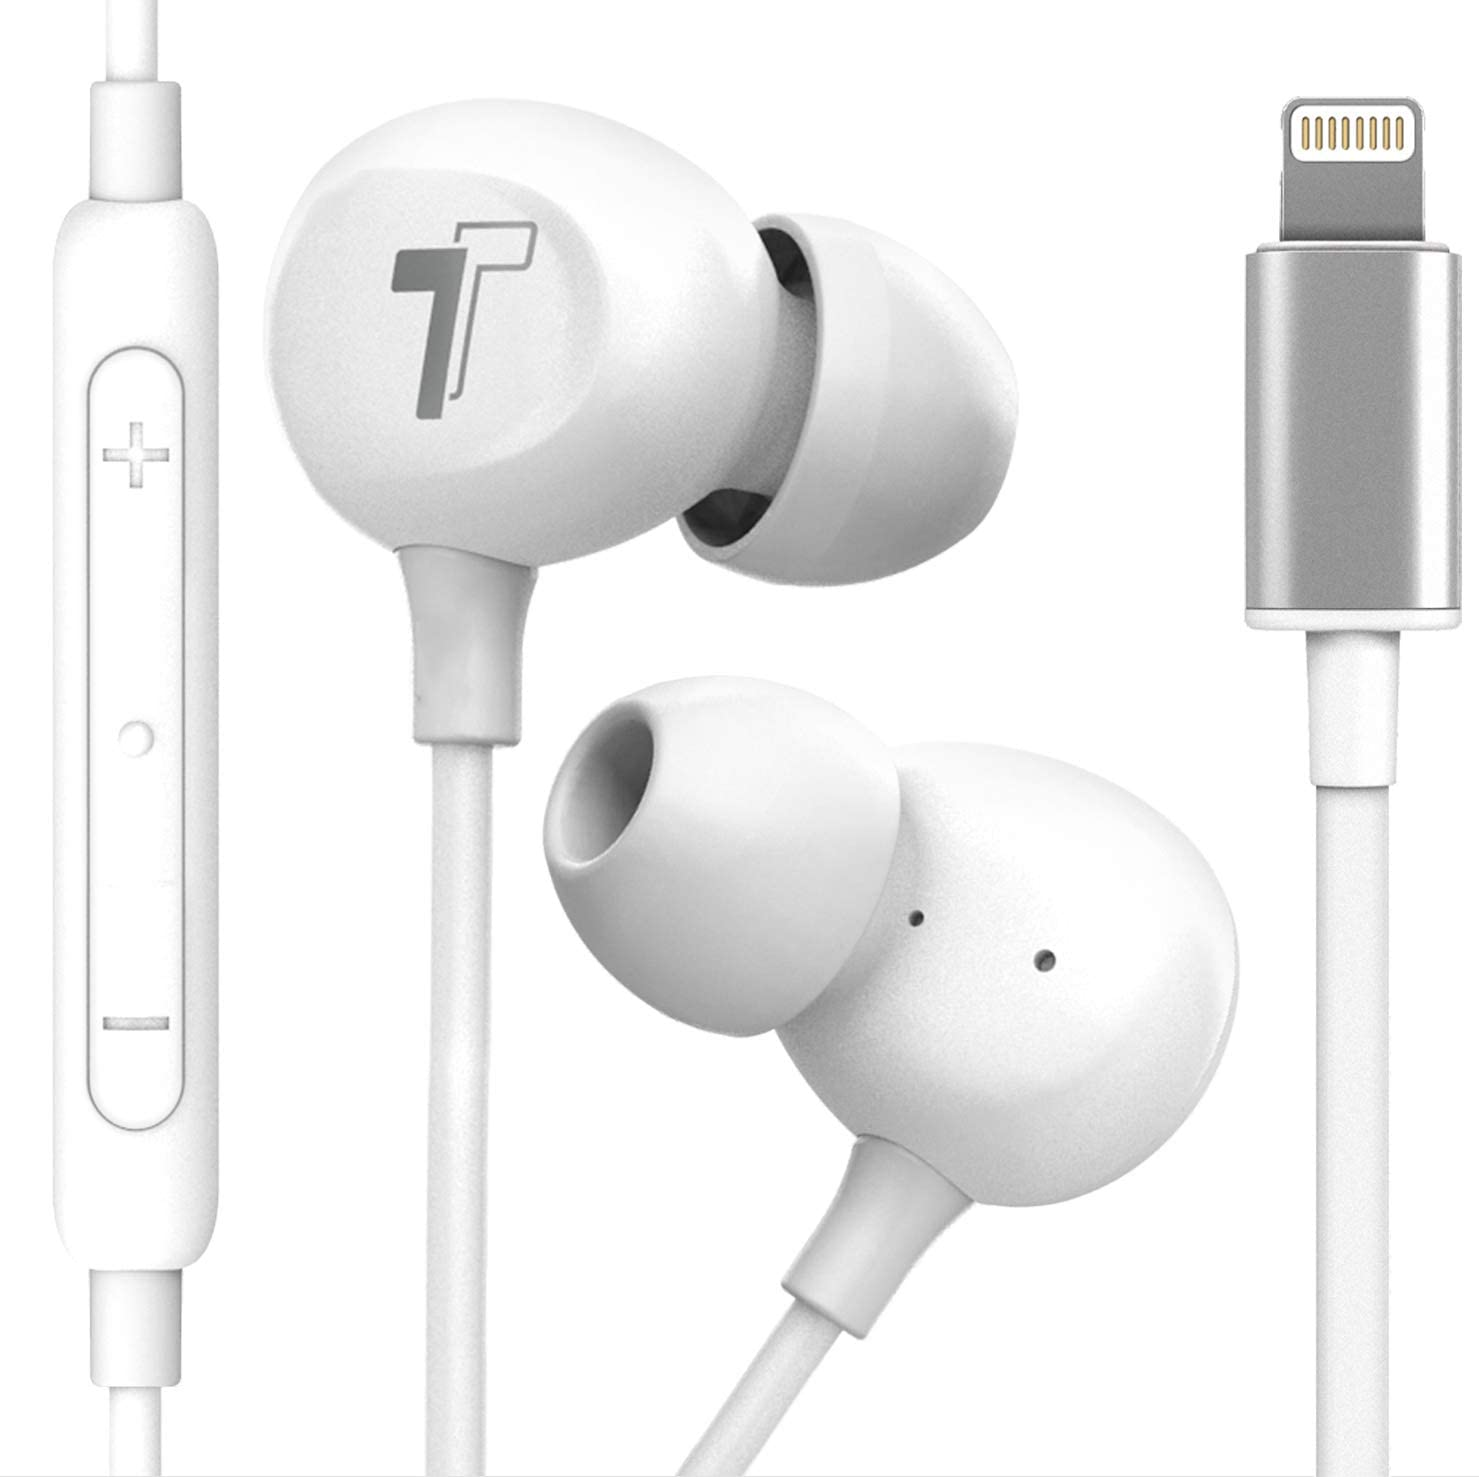 Amazon Com Thore Compatible With 2020 Iphone Se Earbuds V60 Wired In Ear Earphones Apple Mfi Certified Lightning Headphones With Mic For Iphone 7 8 Plus X Xs Max Xr 11 Pro Max Se 12 12